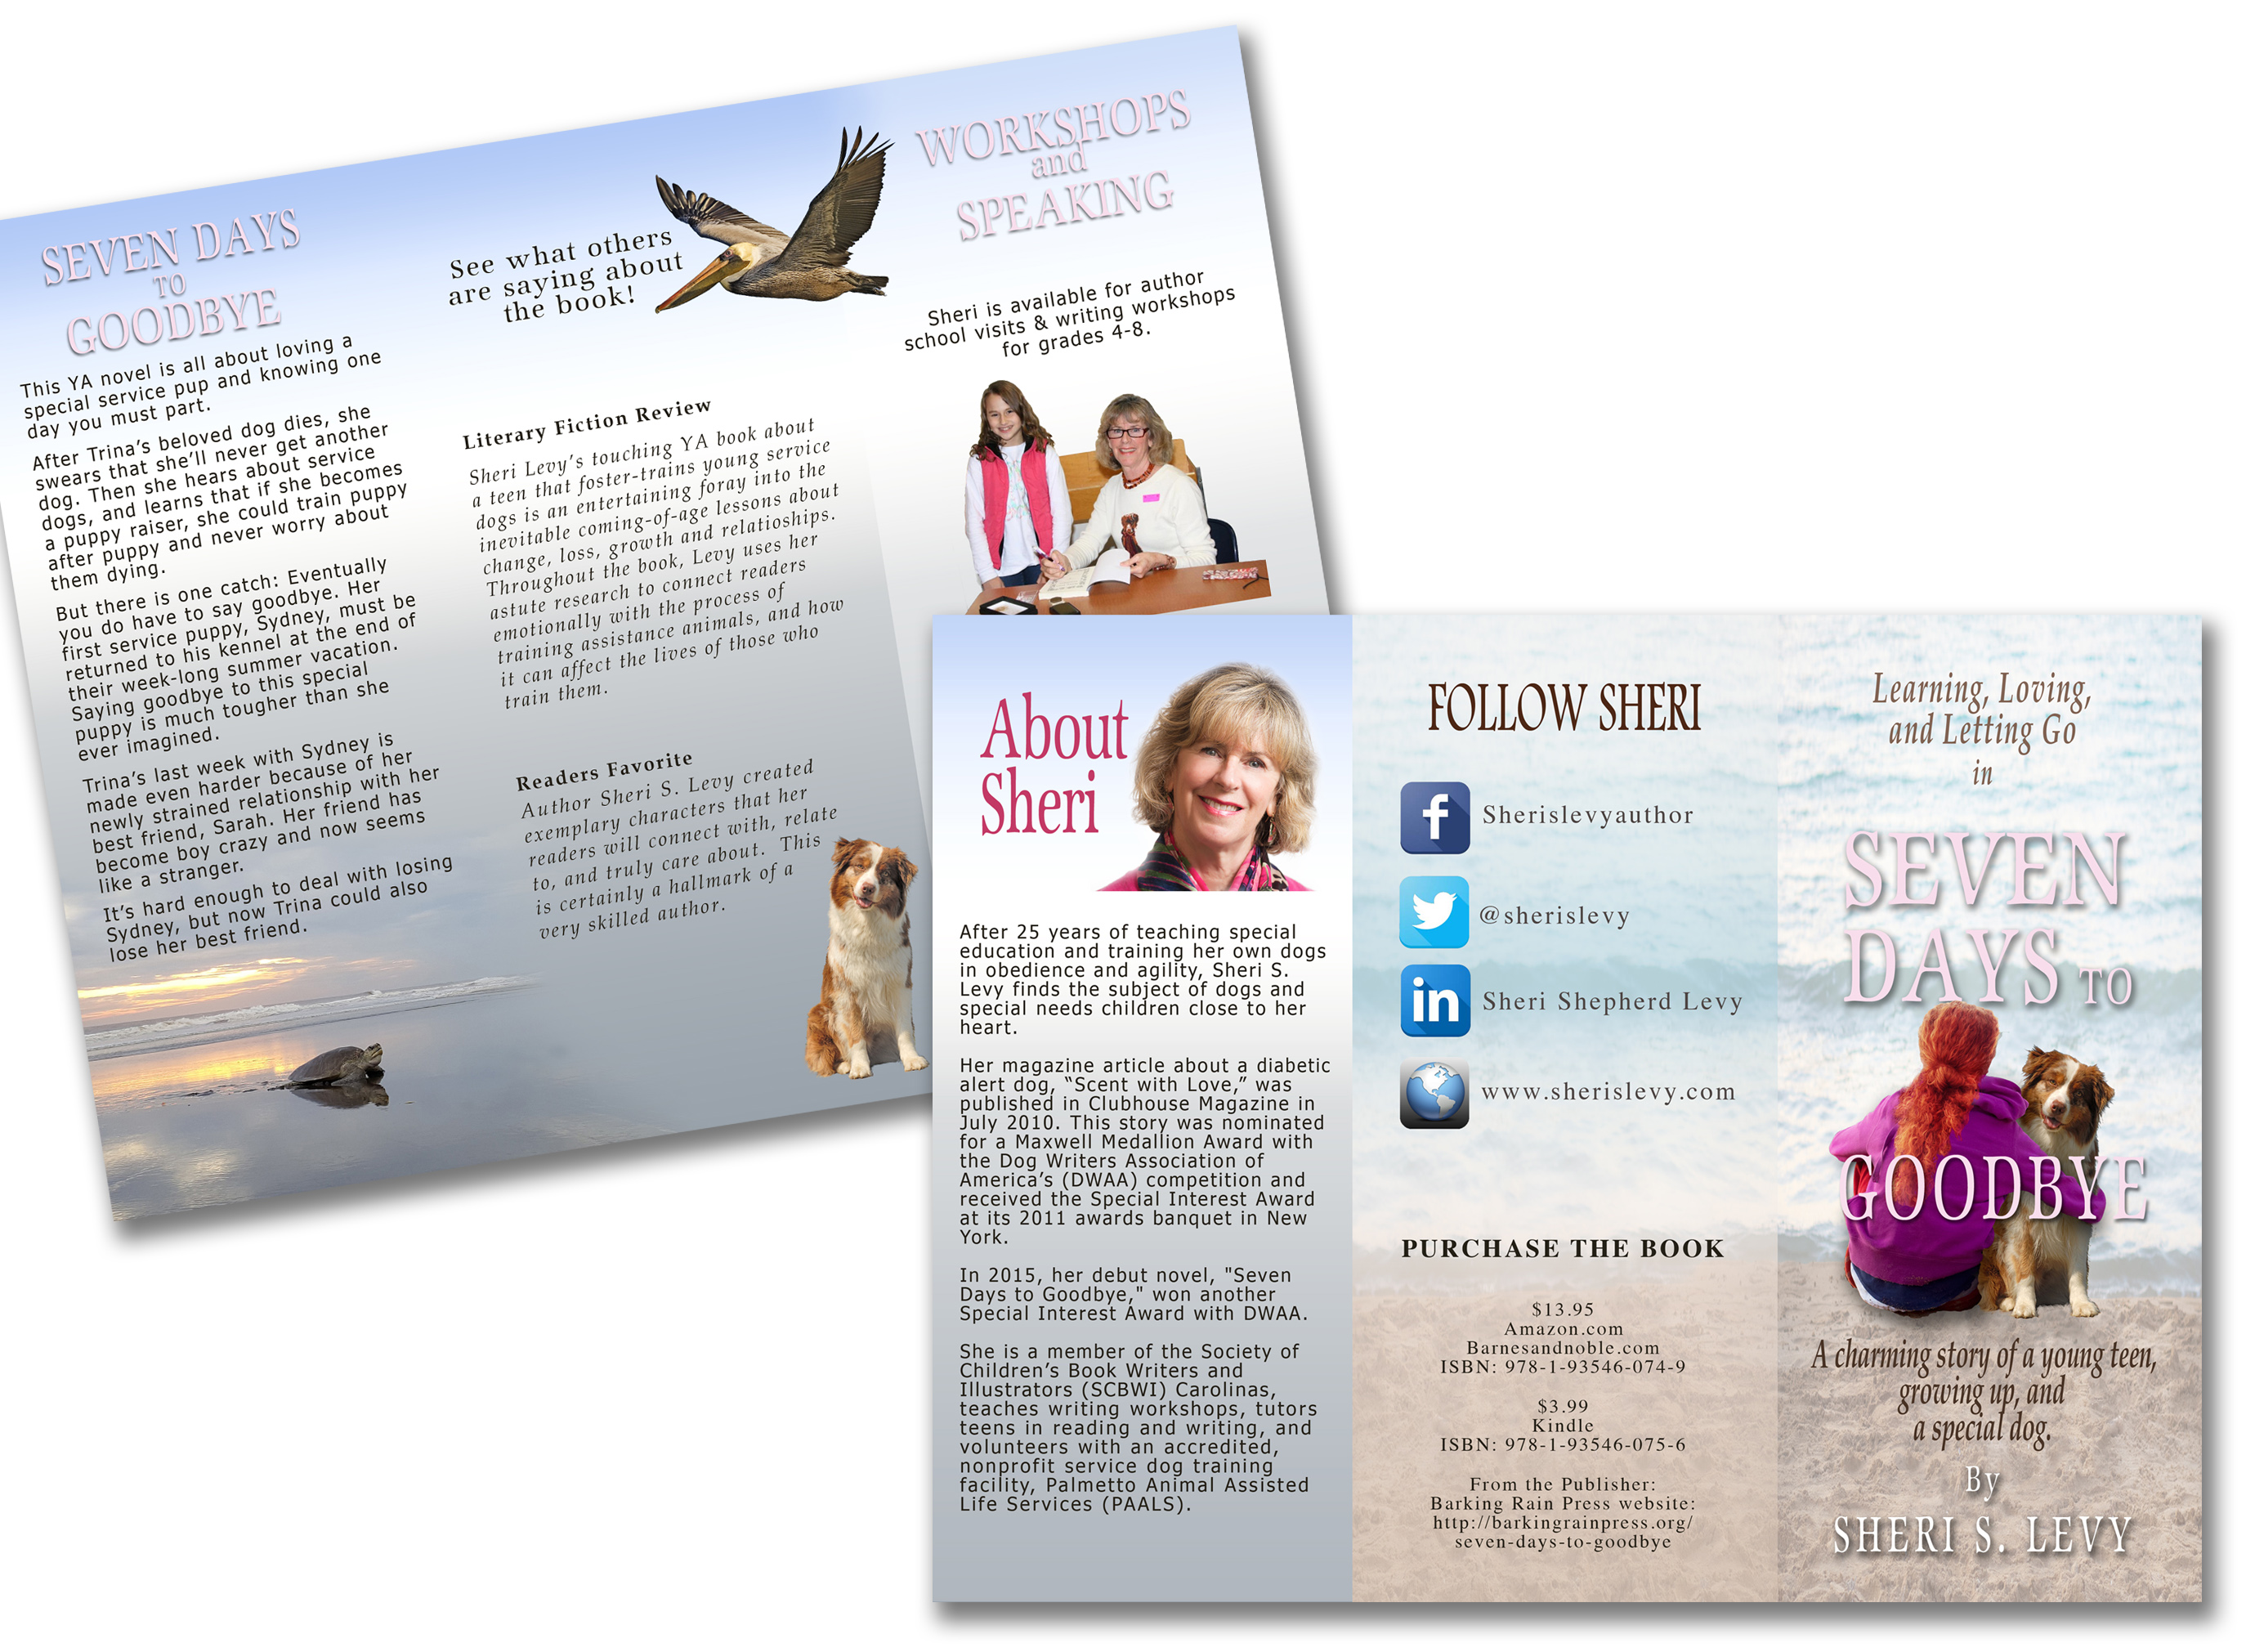 Brochure for author